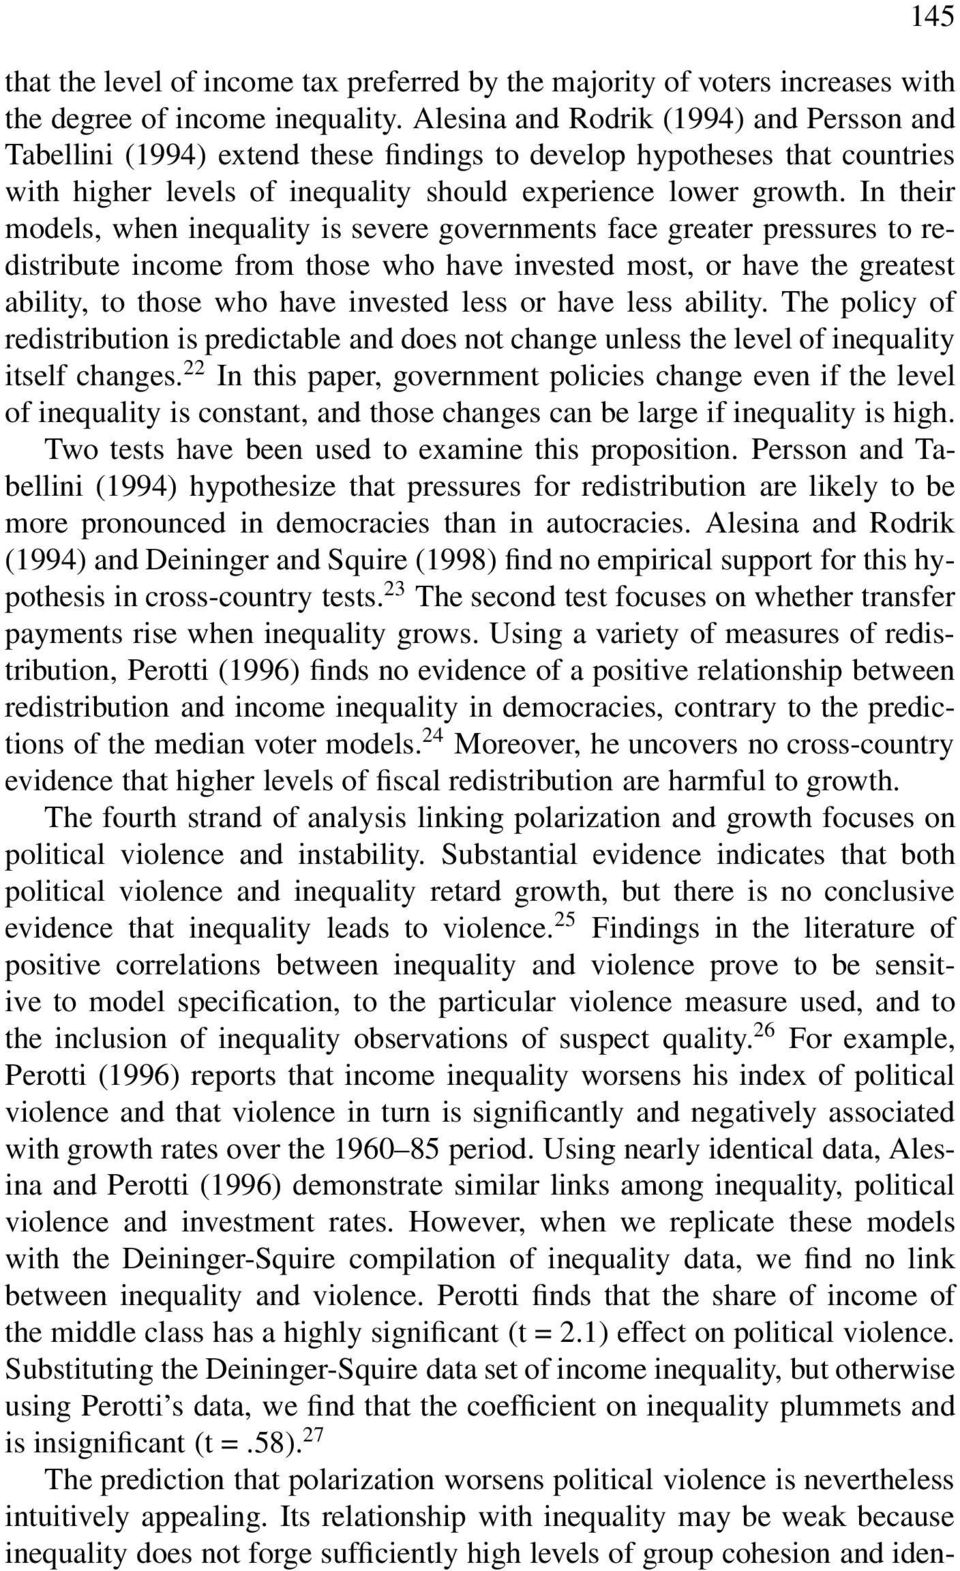 In their models, when inequality is severe governments face greater pressures to redistribute income from those who have invested most, or have the greatest ability, to those who have invested less